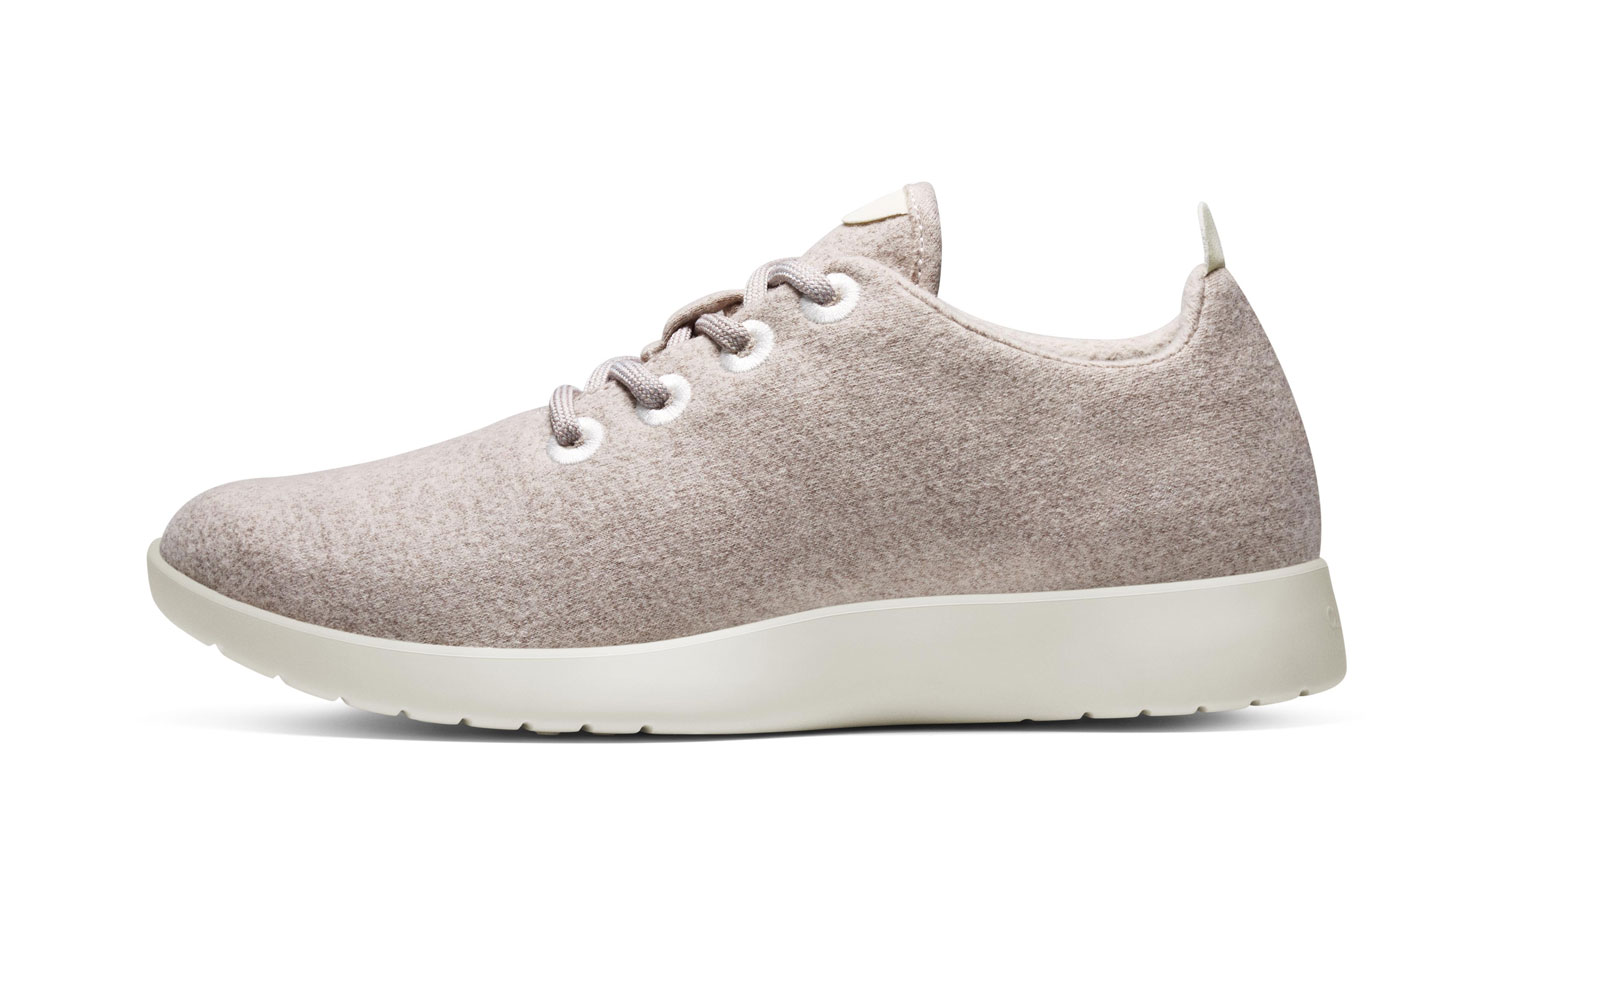 The Best Comfy and Cute Sneakers